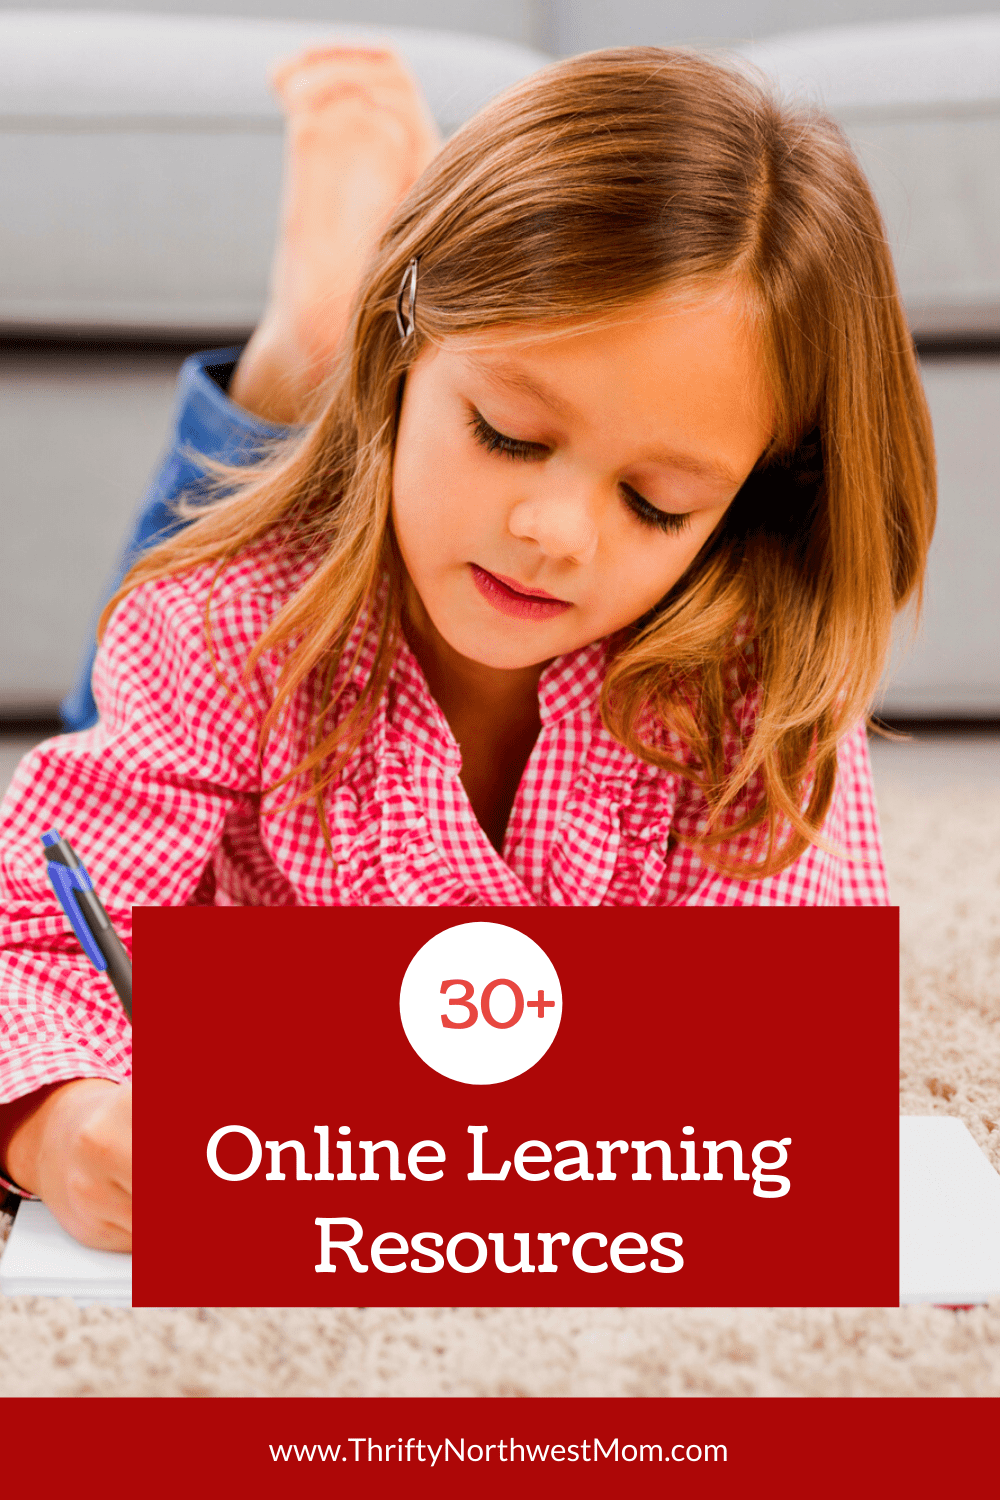 30+ Online Learning Resources for Students